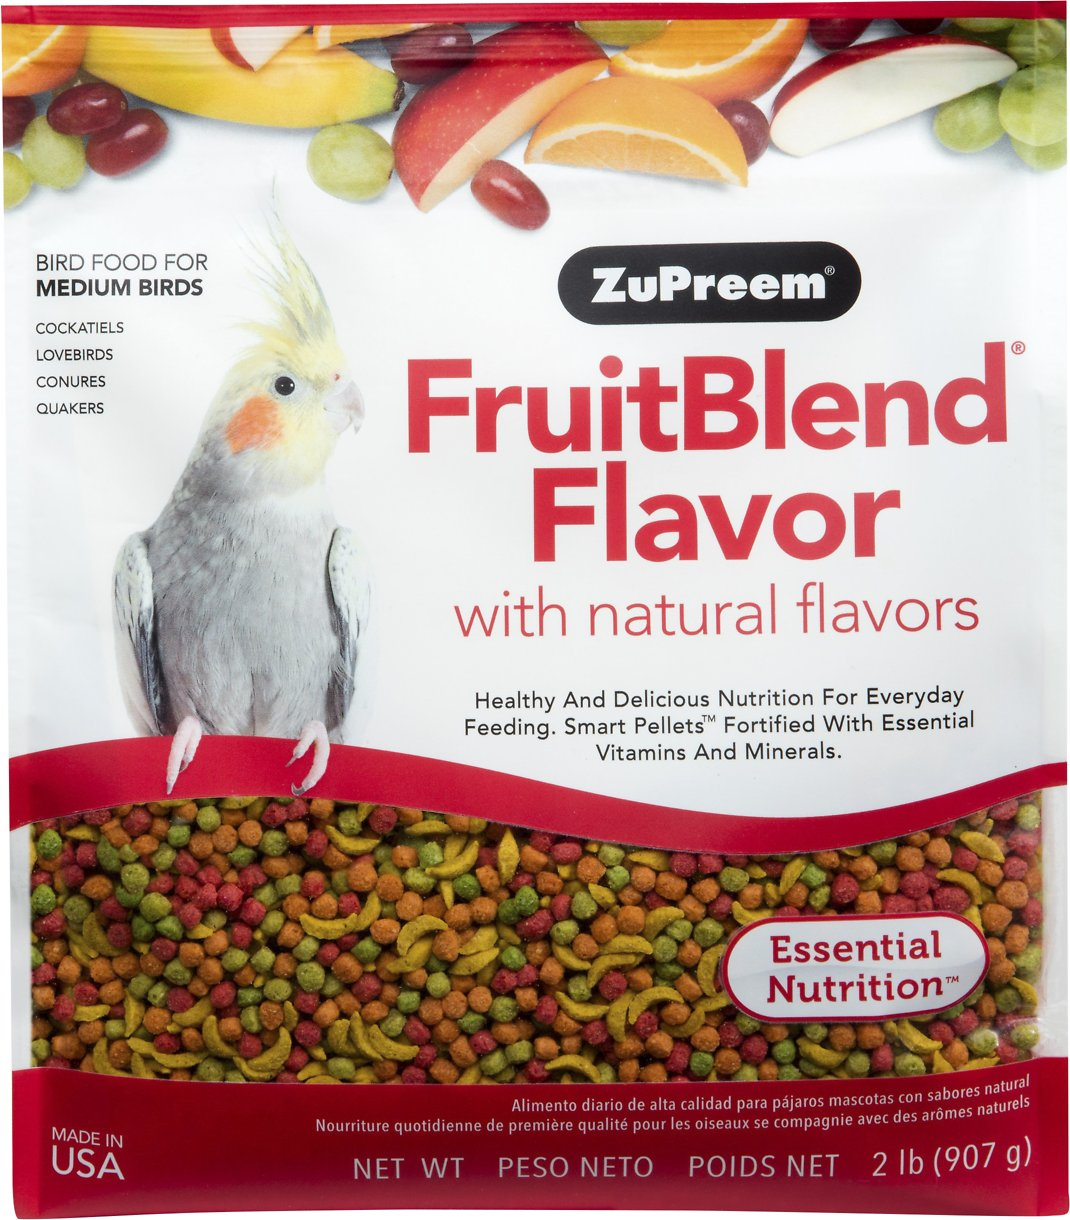 ZuPreem FruitBlend with Natural Fruit Flavors Medium Bird Food Image